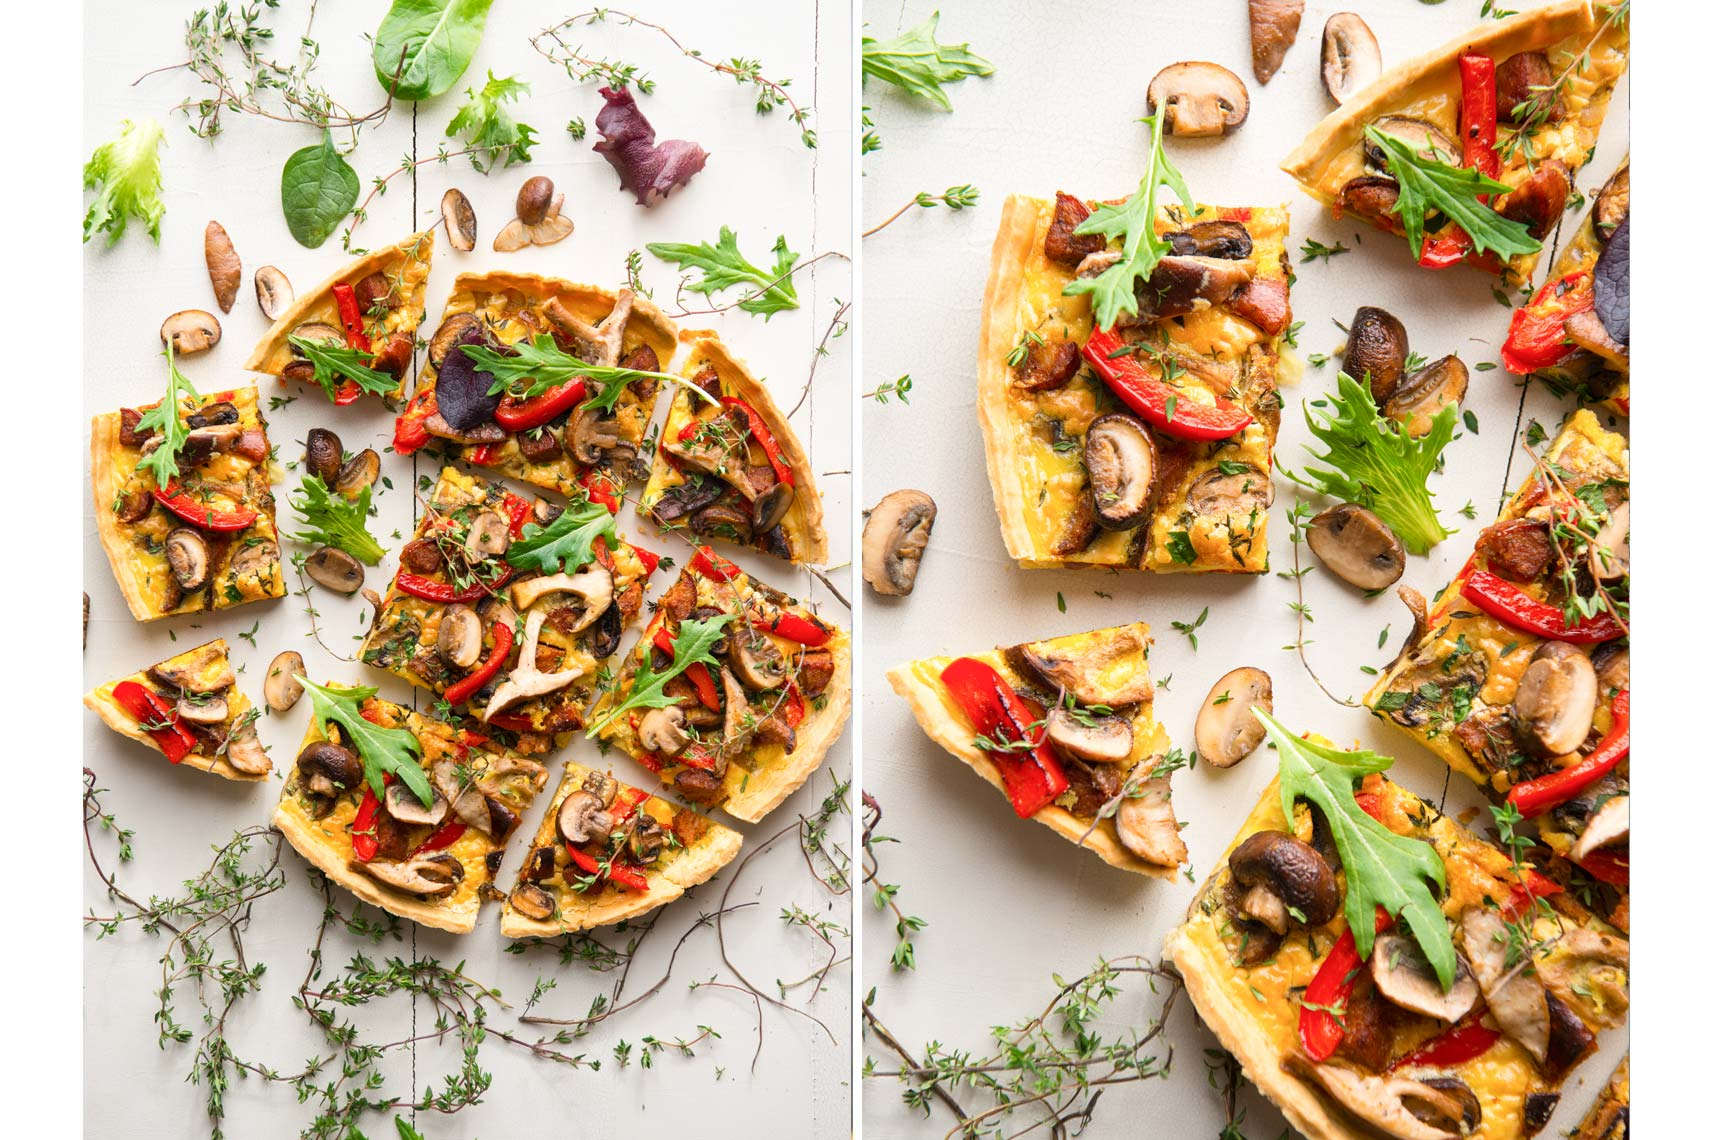 Mushroom Tart - Food Photographer Philadelphia, Pennsylvania